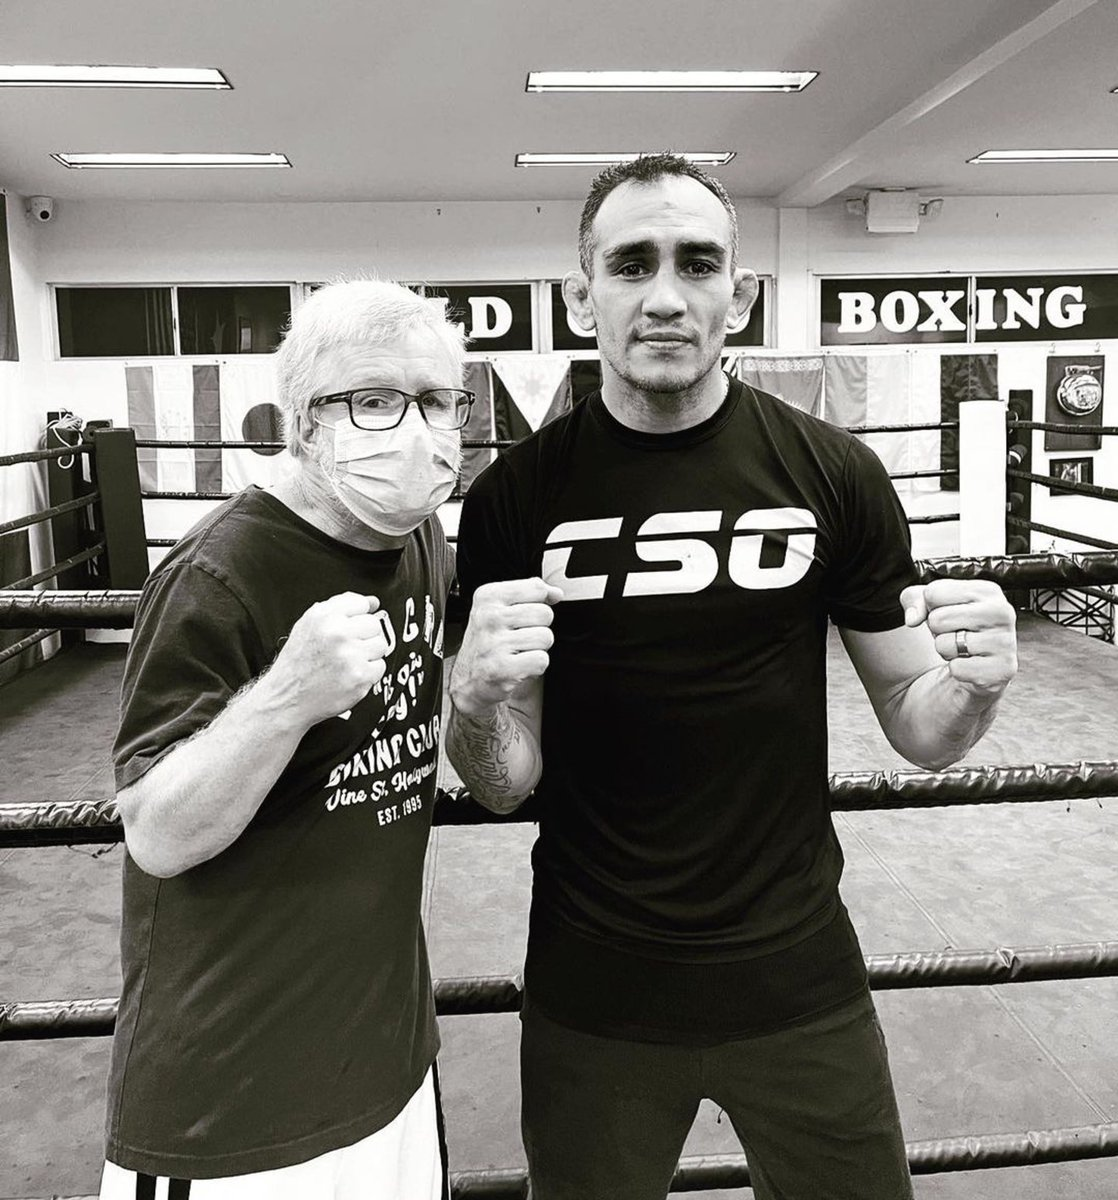 Great first day, Champ! @TonyFergusonXT @ufc @danawhite @WildCardBoxing1